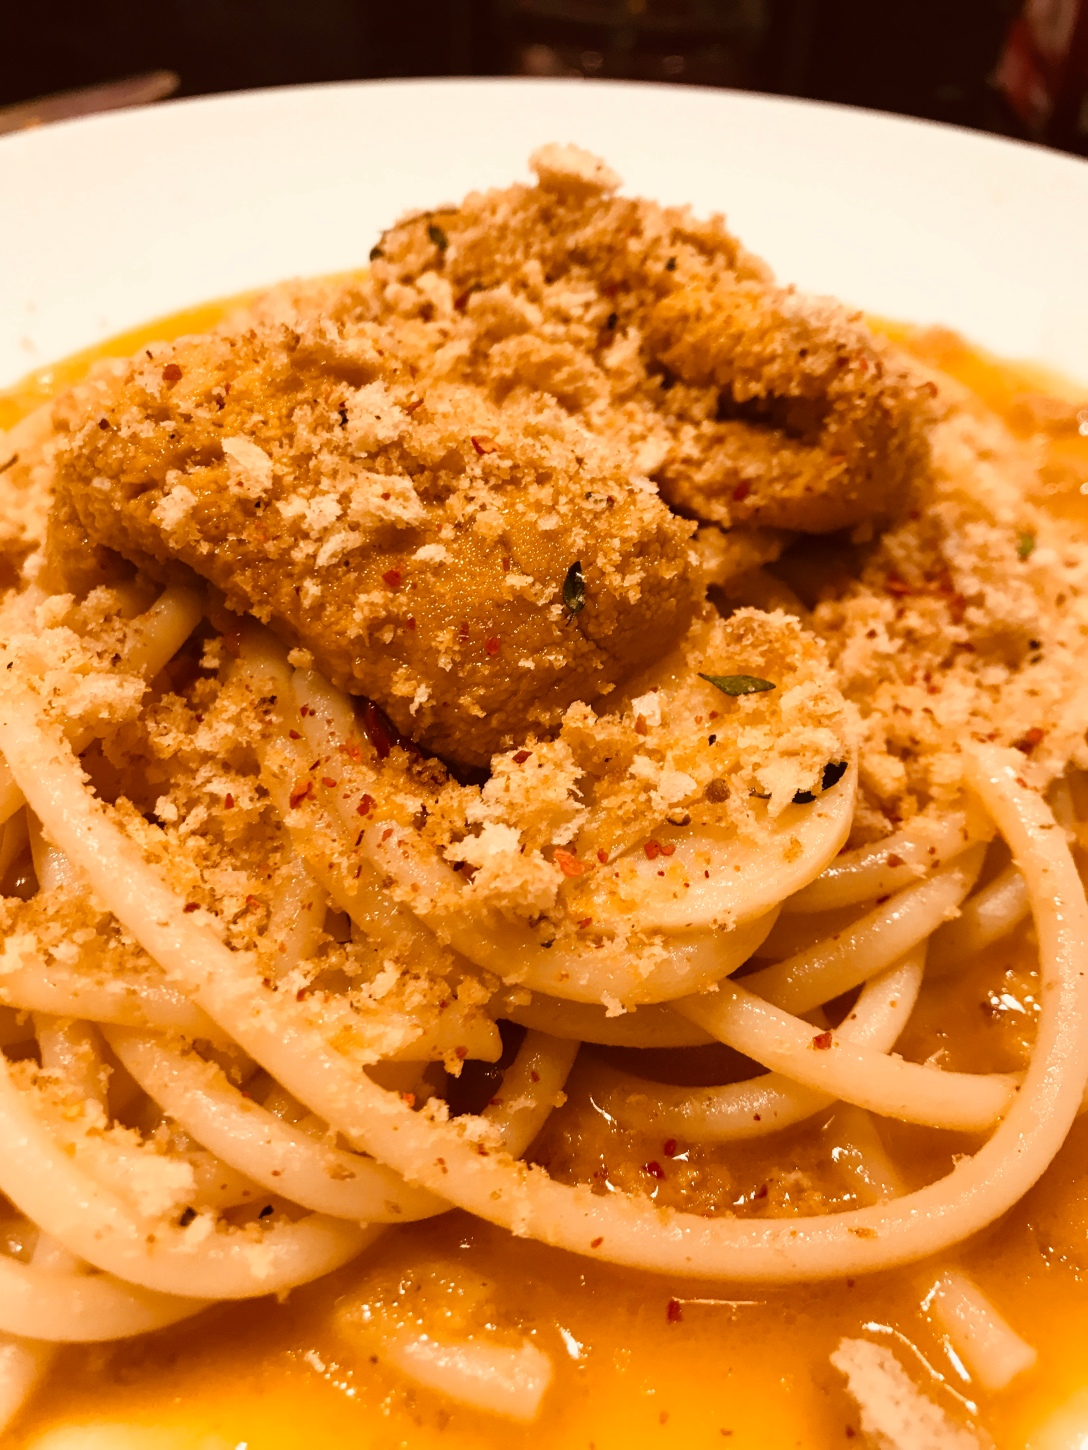 Battersby_Uni_Pasta_plated_2